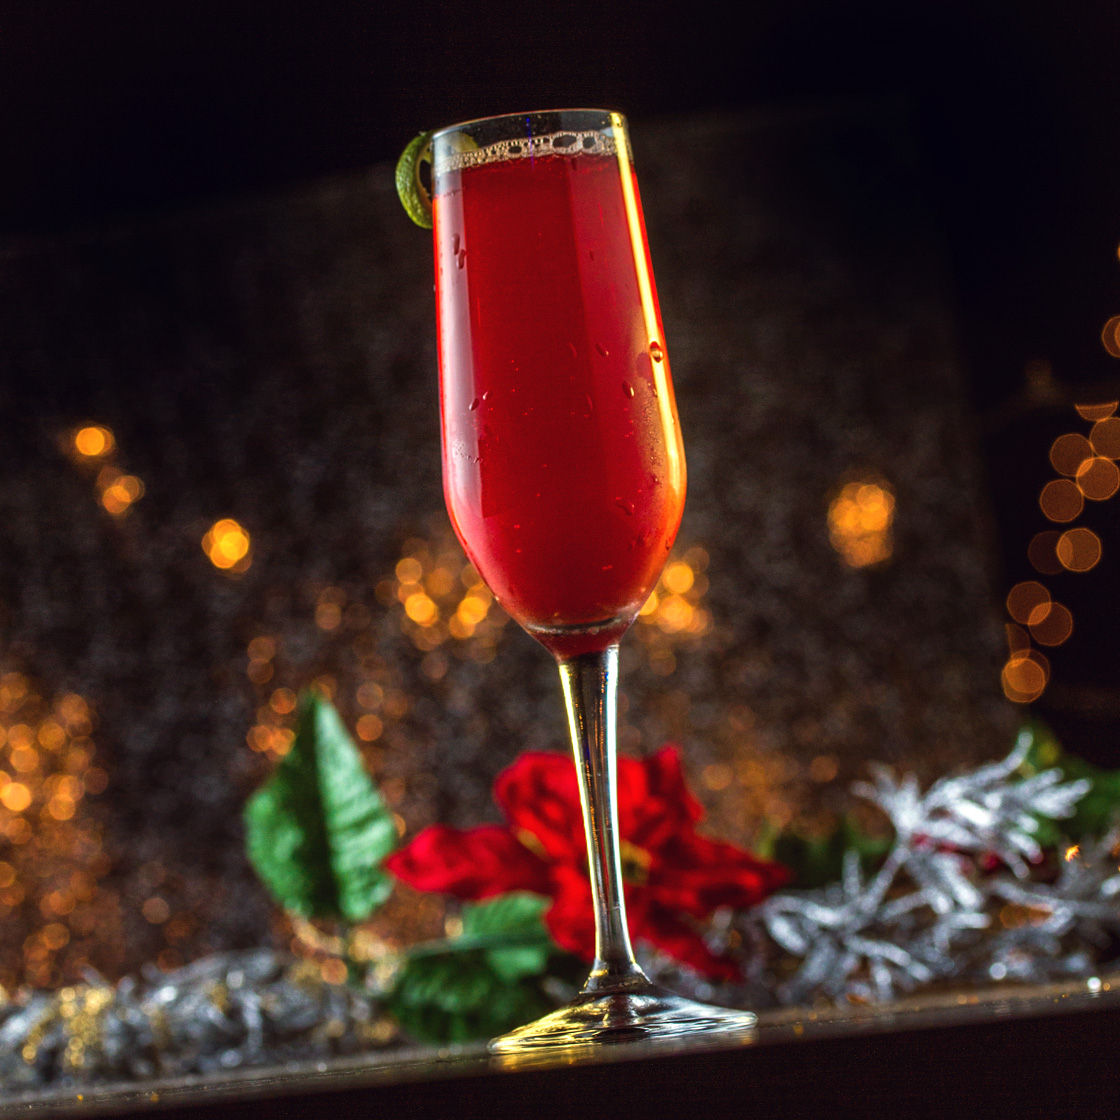 Poinsettia Cocktail - Sparkling Holiday Drink Recipe